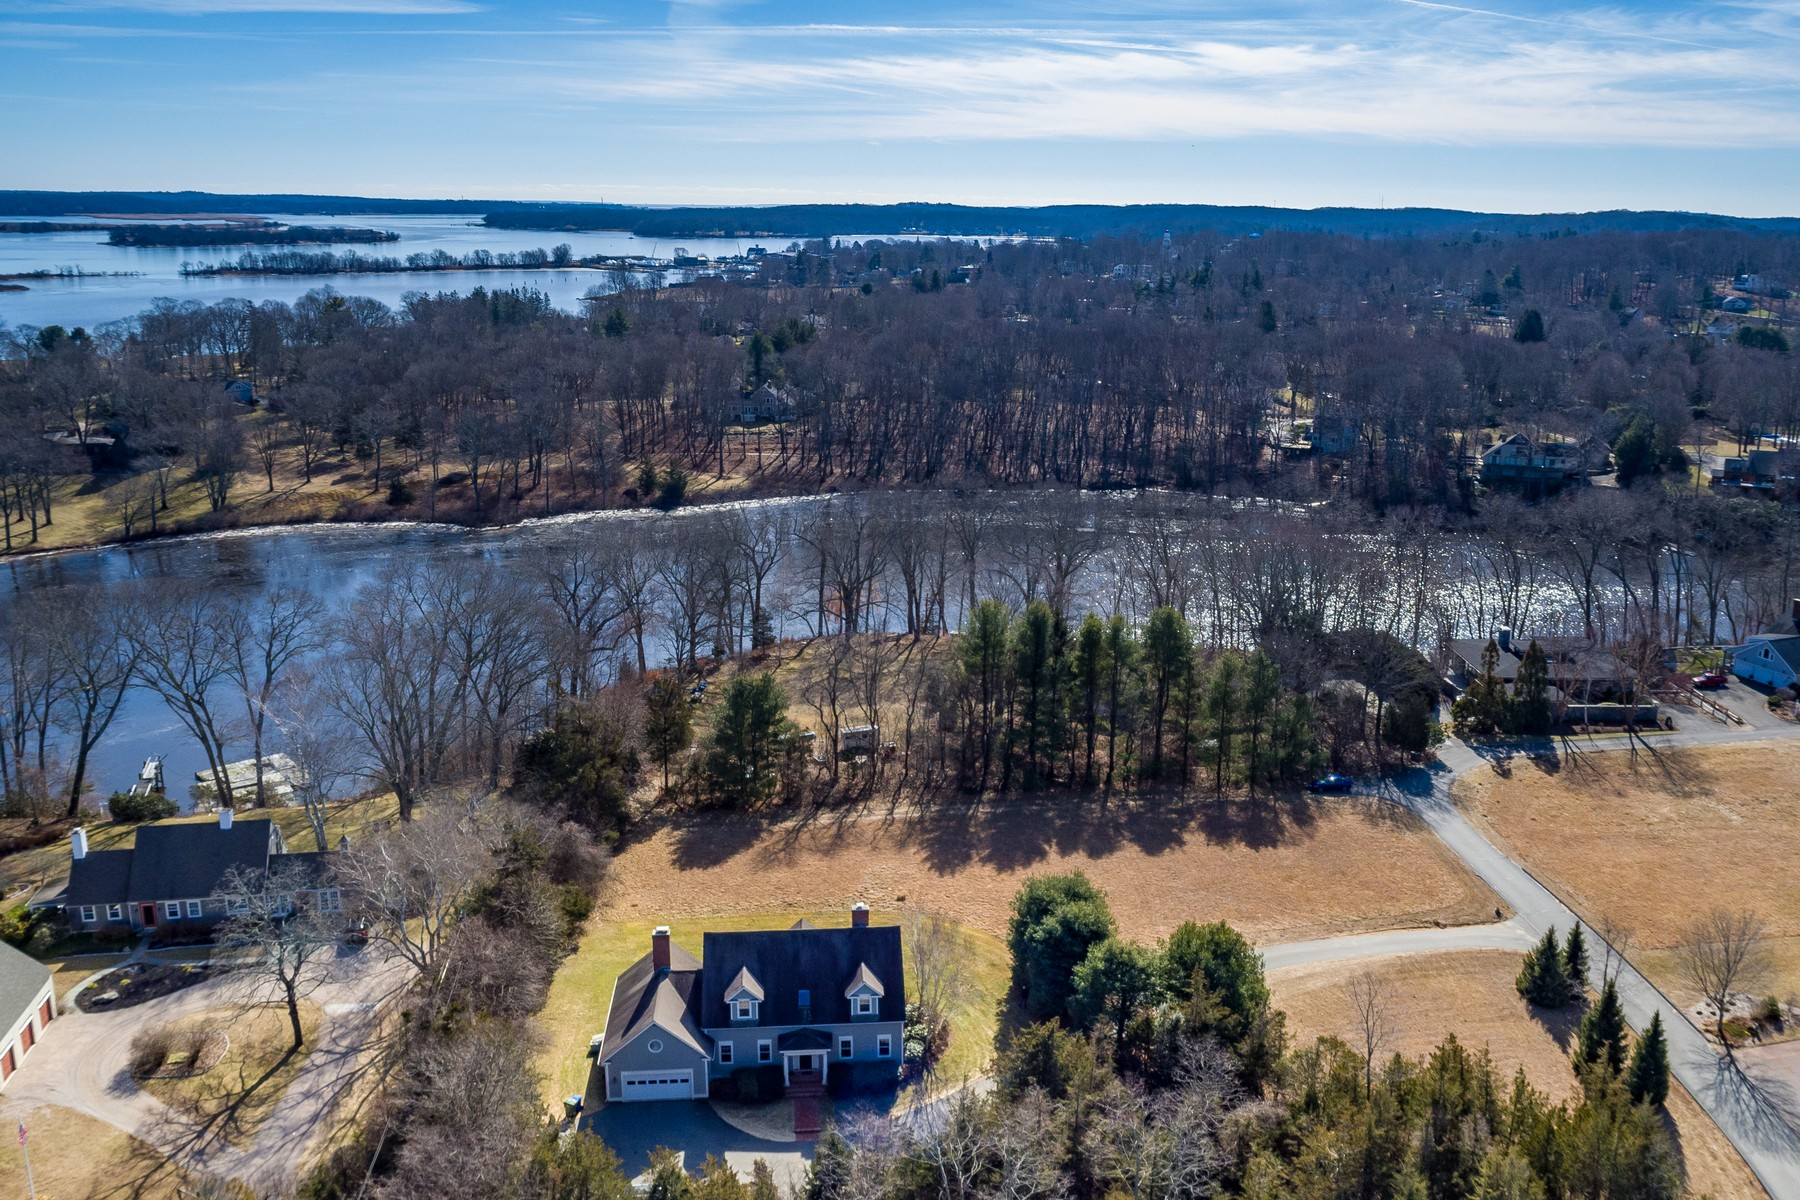 Single Family Home for Sale at Charming Custom Built Home in Coveland Farms 43 River Road, Essex, Connecticut, 06426 United States